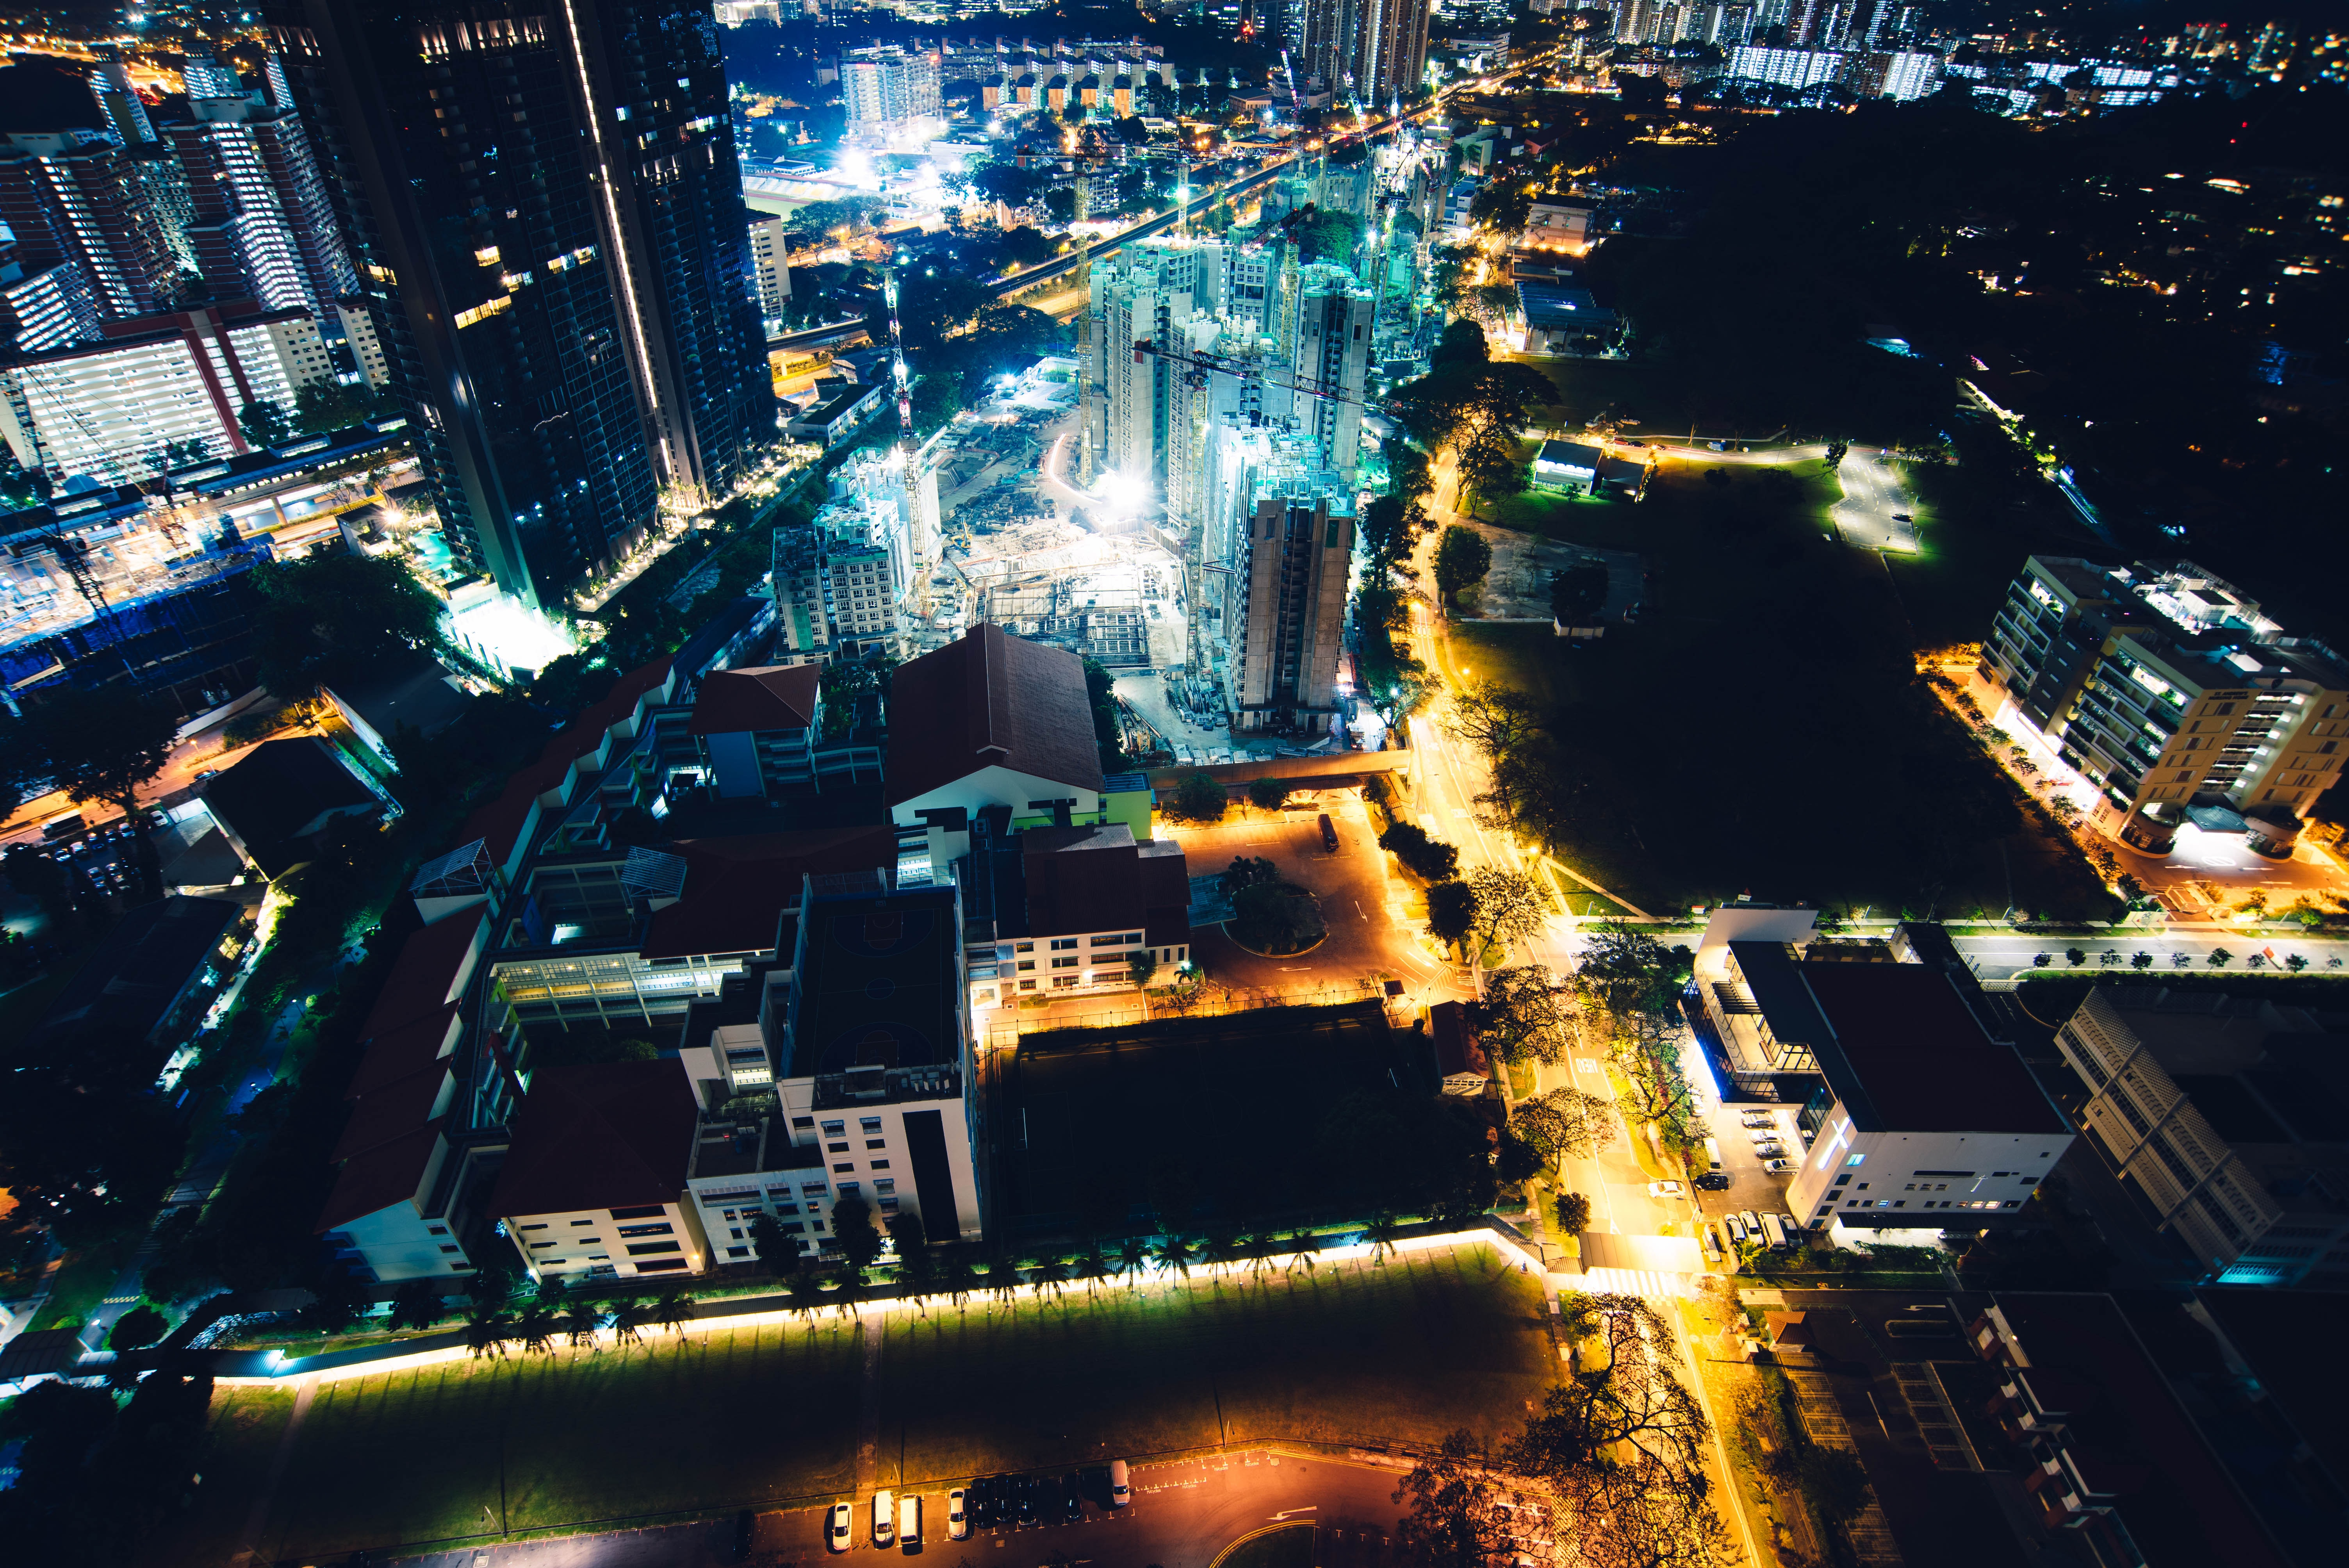 bird's eye view photo of cityscape during nighttime